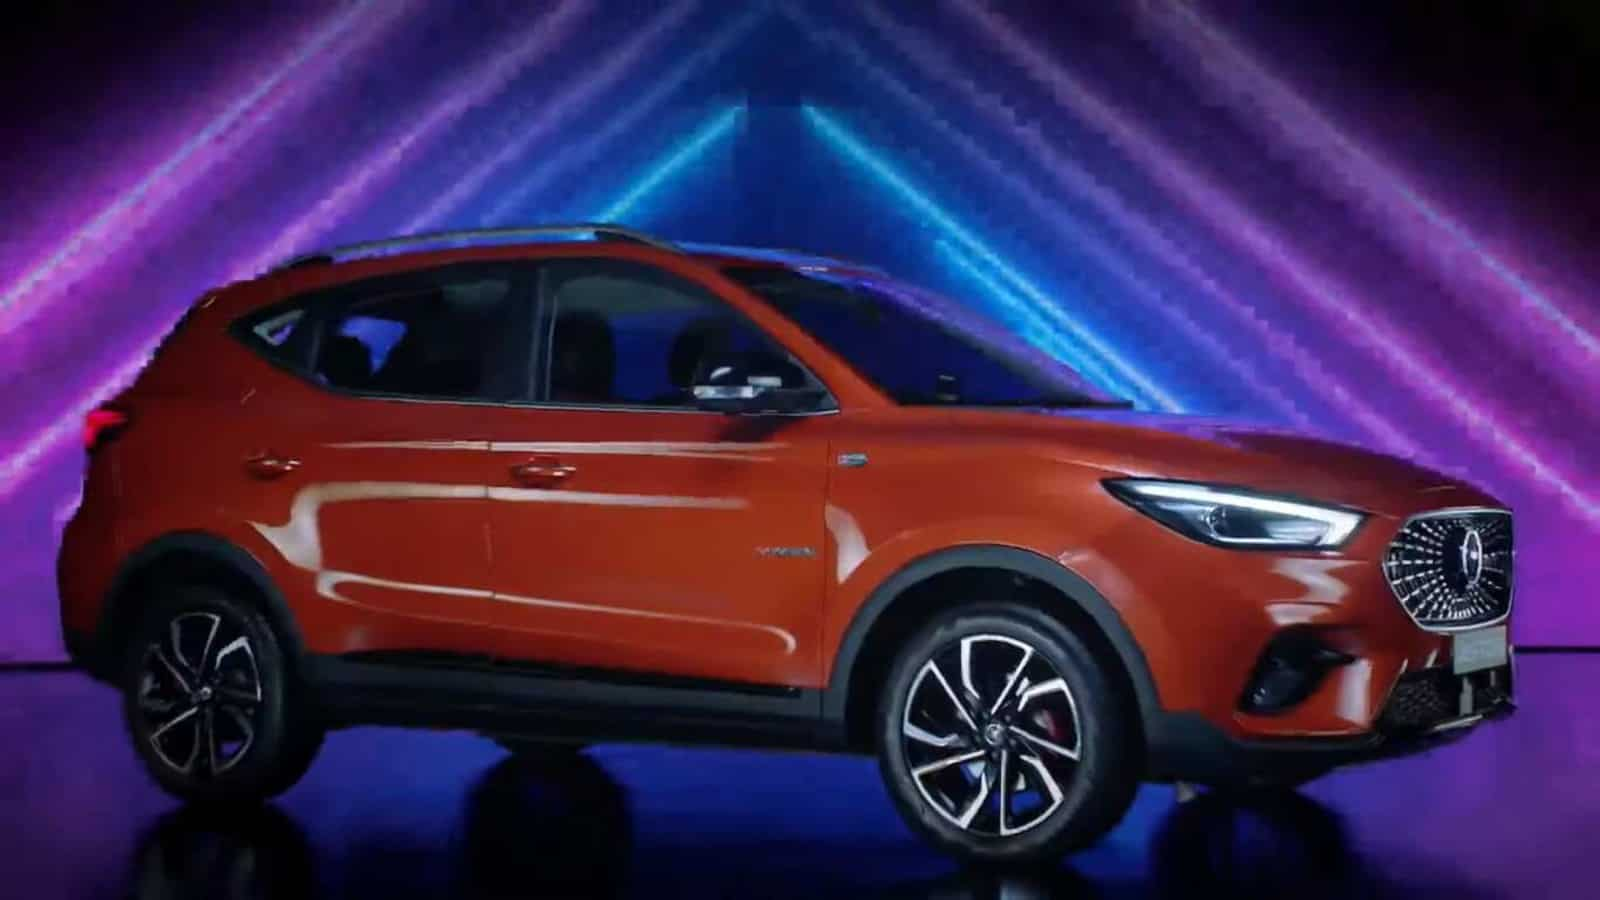 MG Motor launches Astor at ₹9.78 lakh, to compete with Creta, Seltos  ,Kushaq. Check variants, features